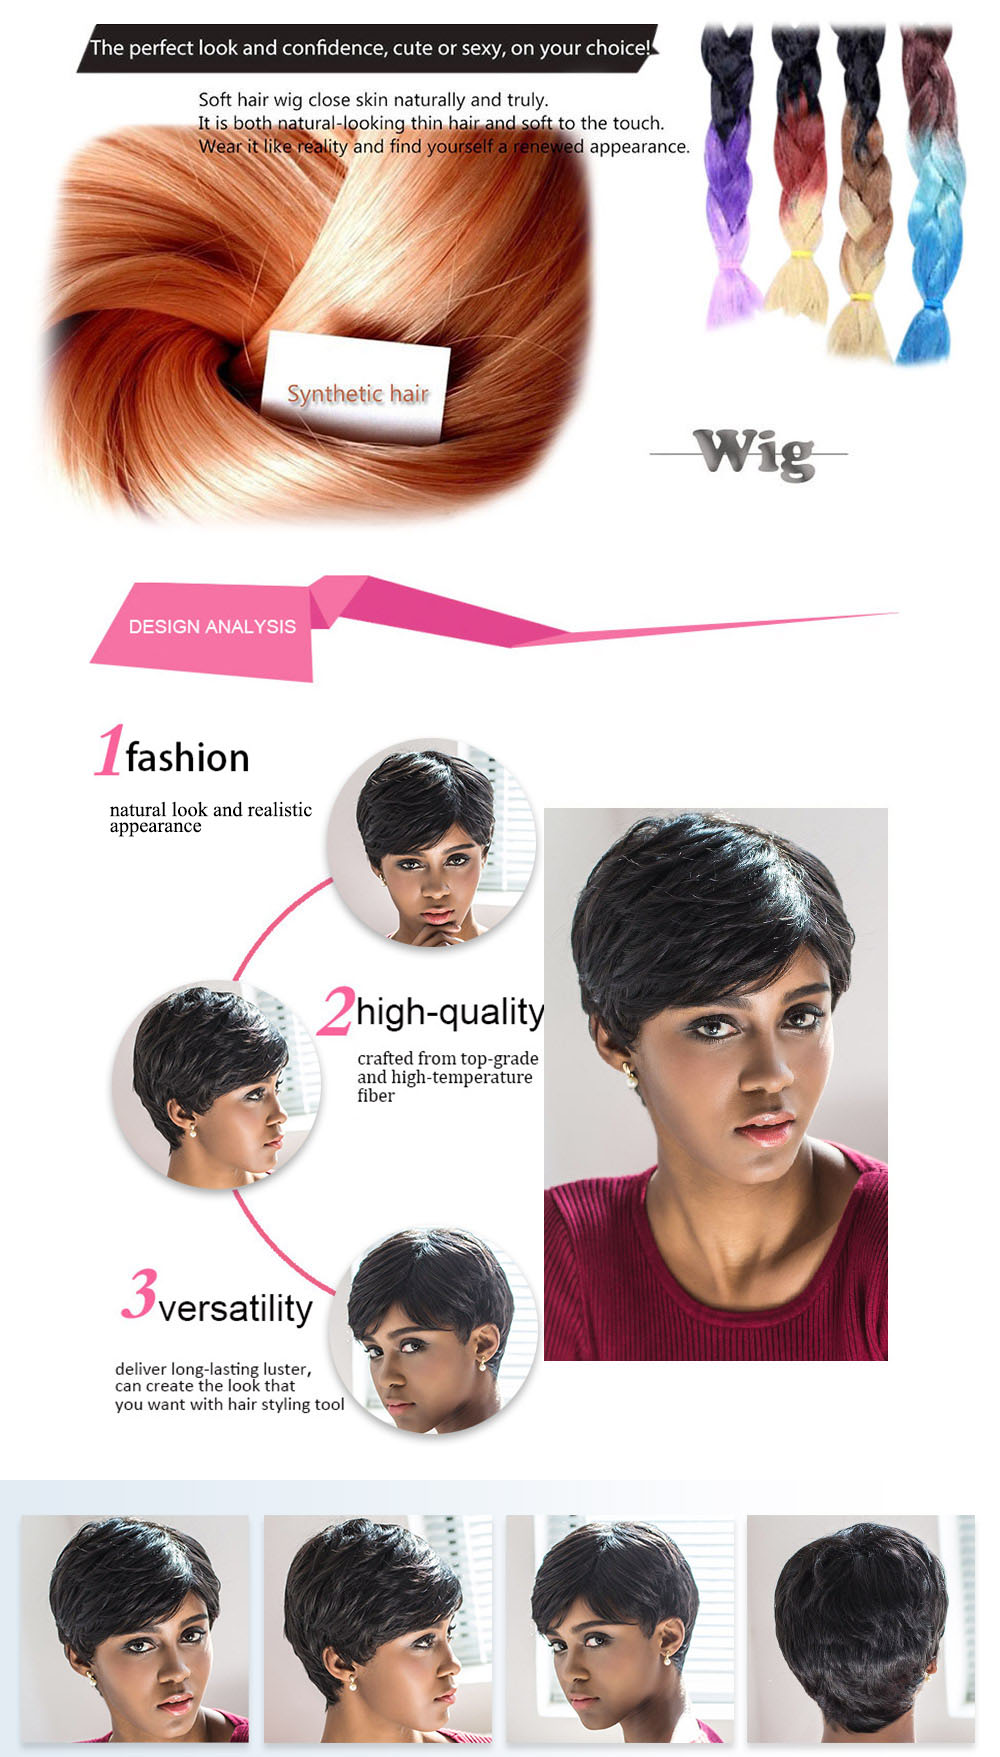 AISIHAIR Short Slightly Curly Black Synthetic Wigs with Side Bangs for Women